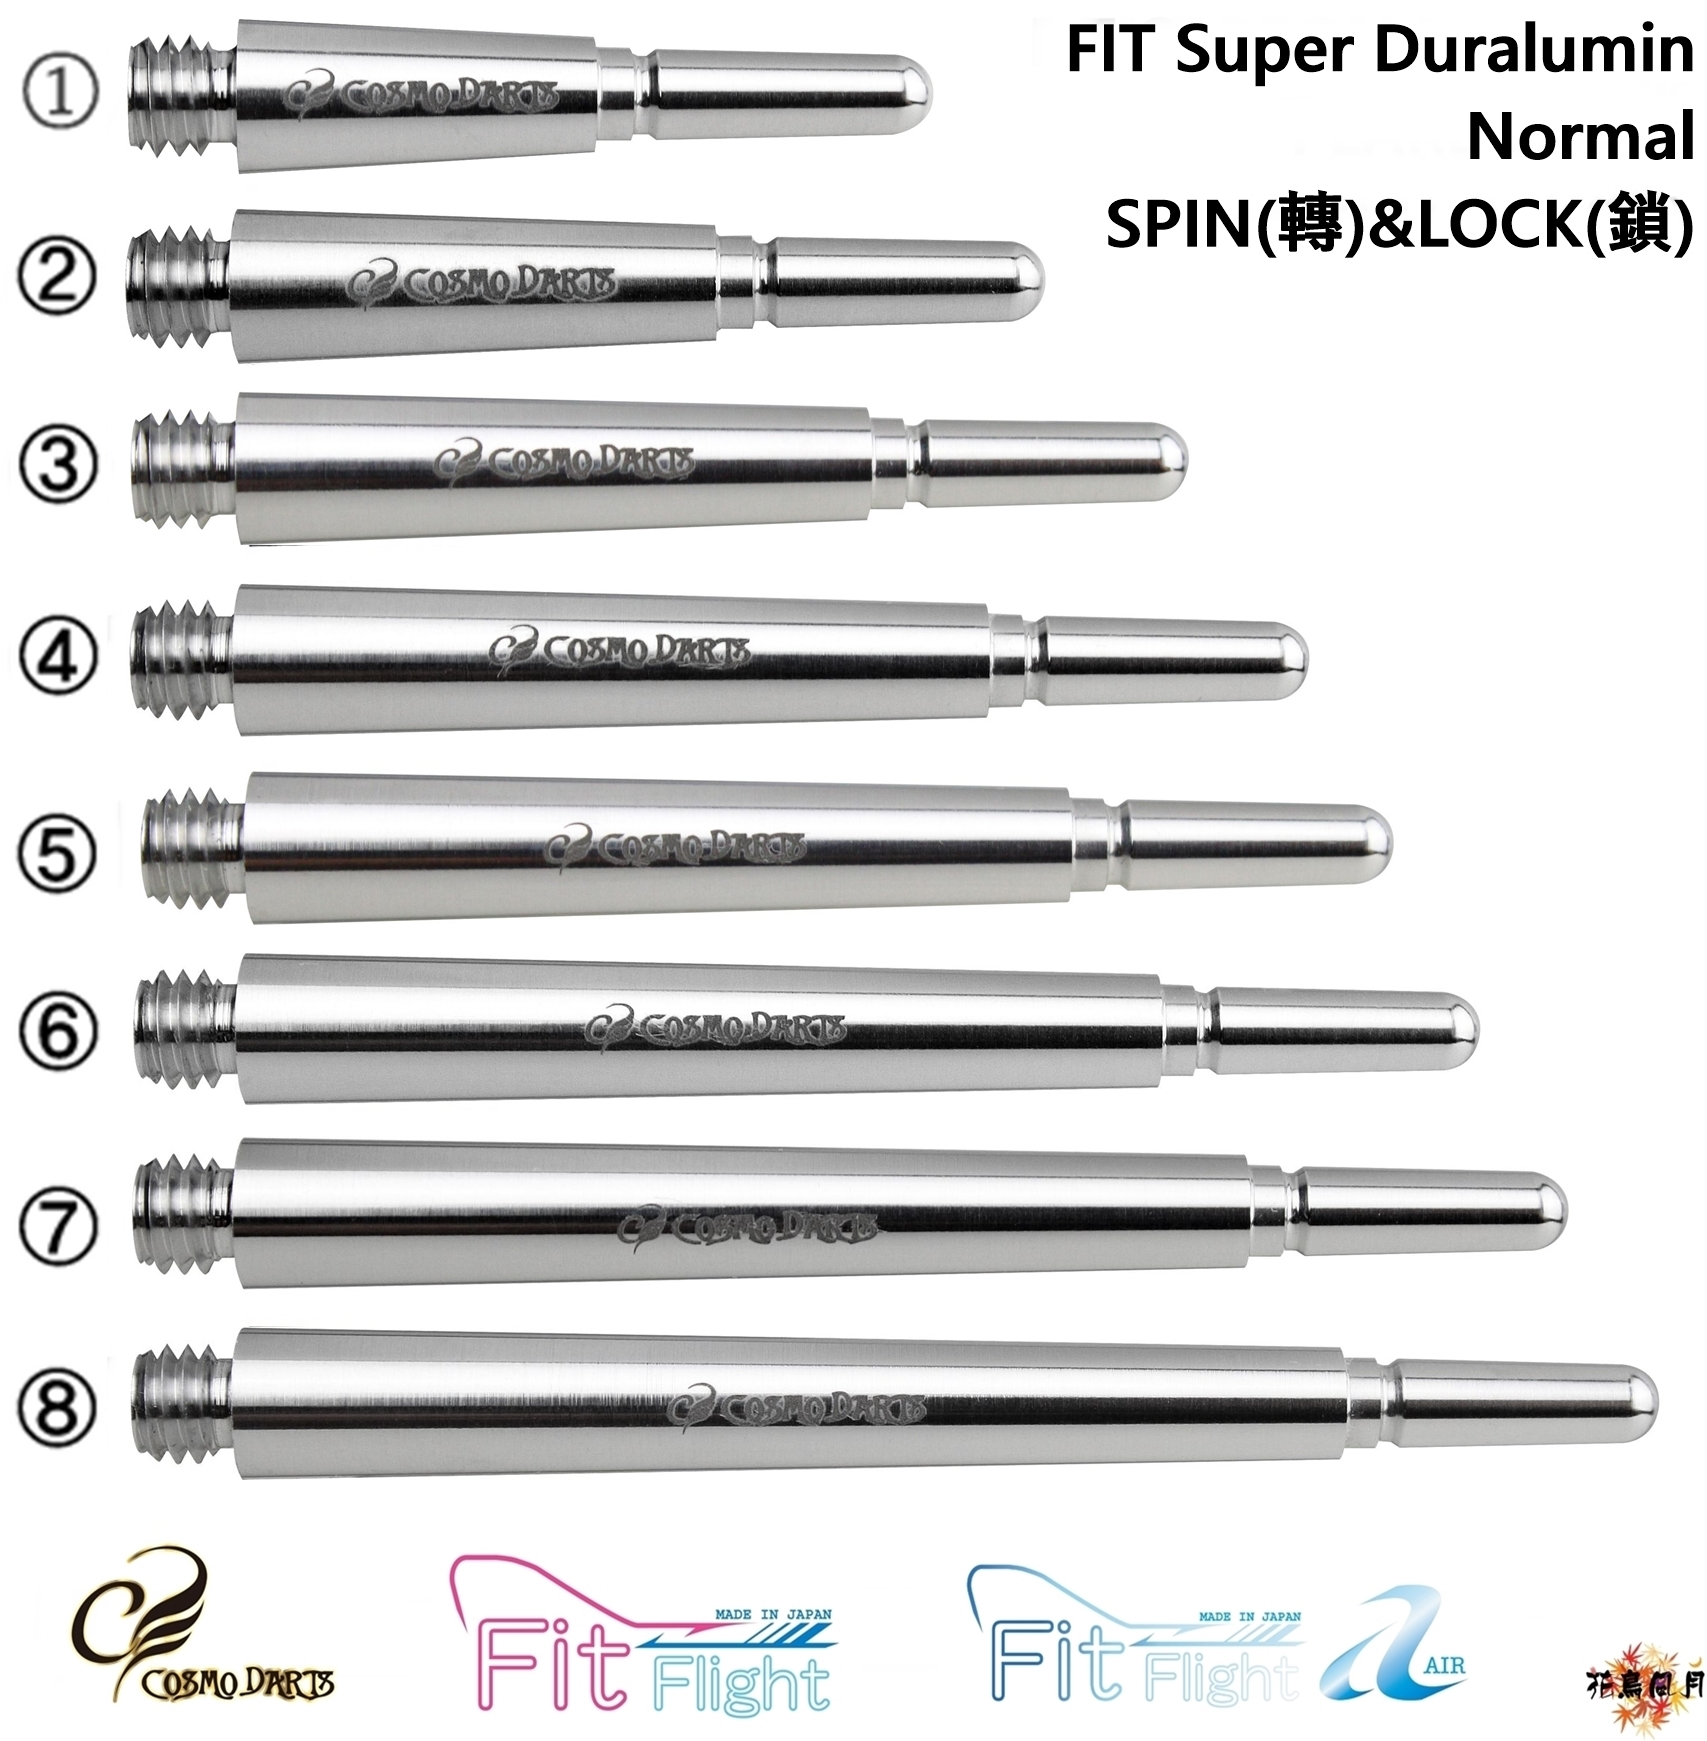 Fit-Super-Duralumin-nomal